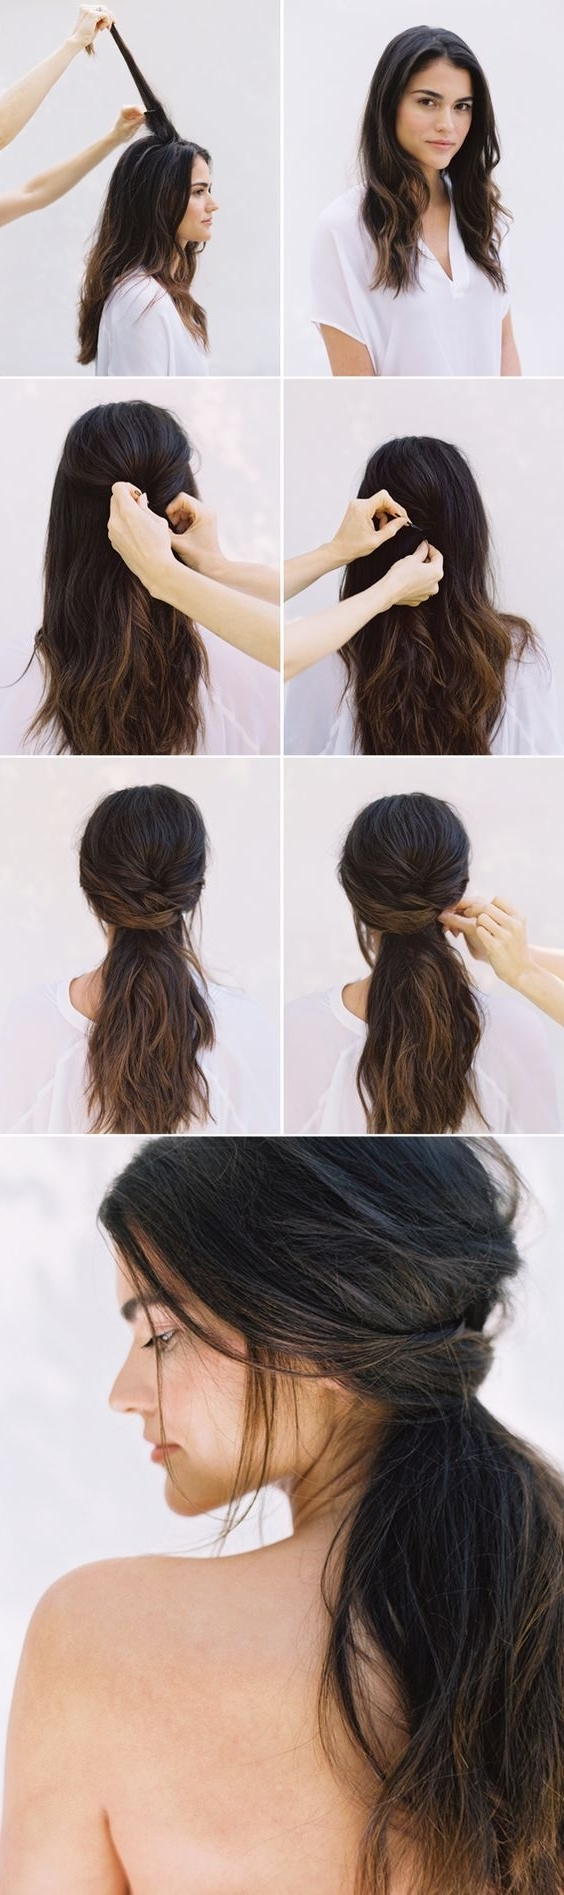 15 Easy Hair Tutorials For Curly Hair – Pretty Designs Pertaining To Easy Updos For Wavy Hair (View 2 of 15)